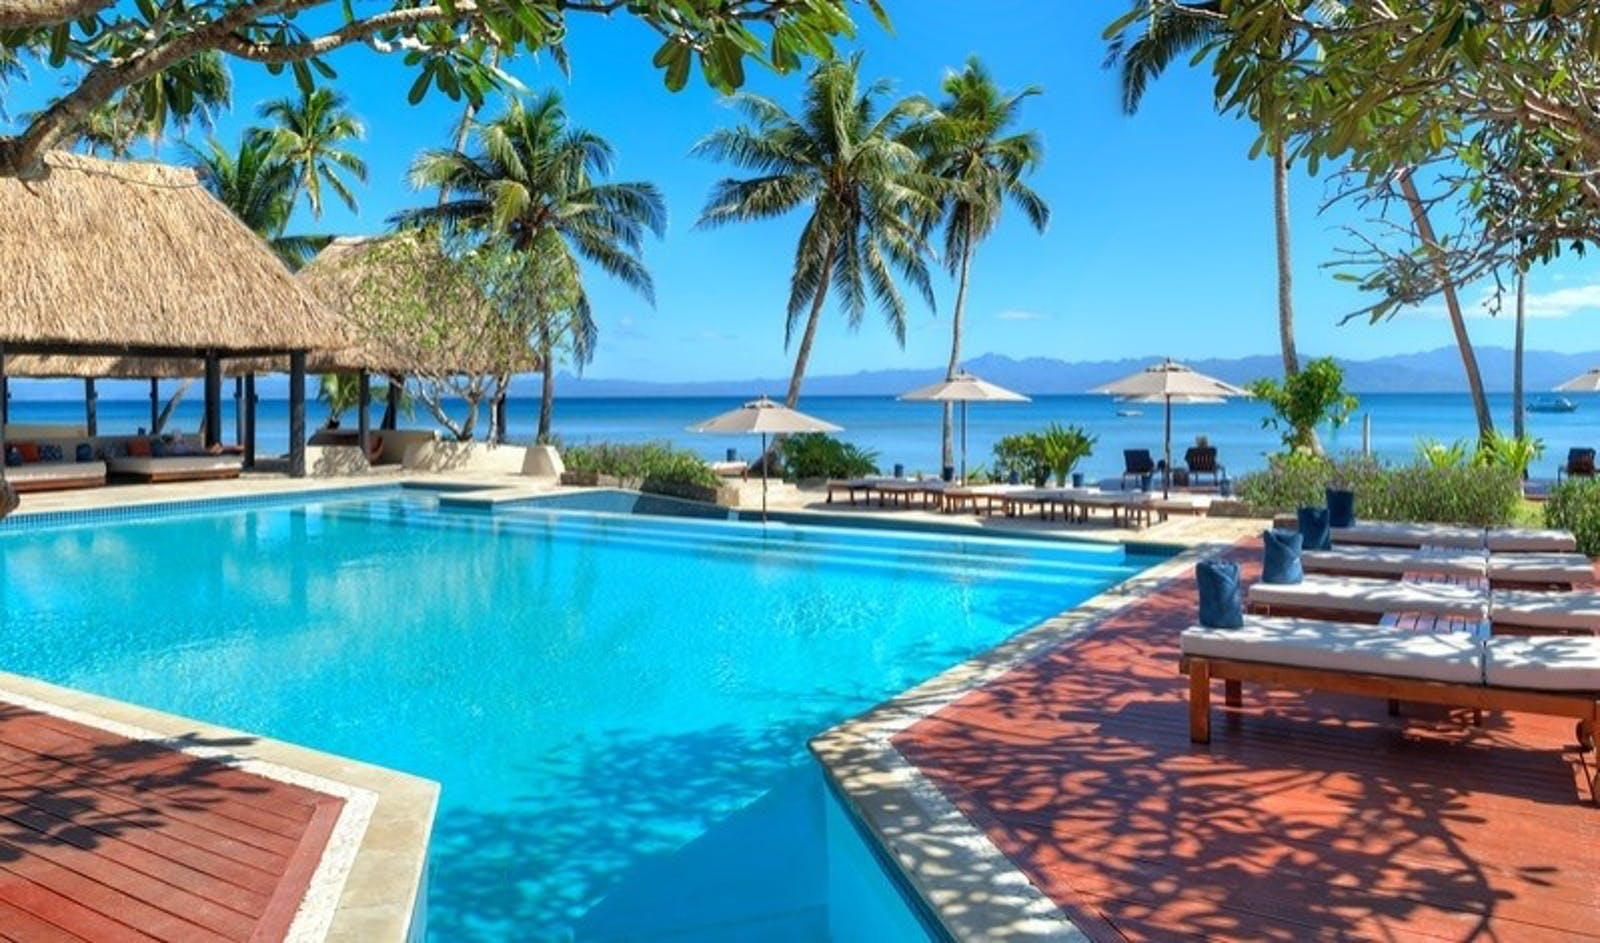 Main Pool at Jean-Michel Cousteau Resort, Fiji